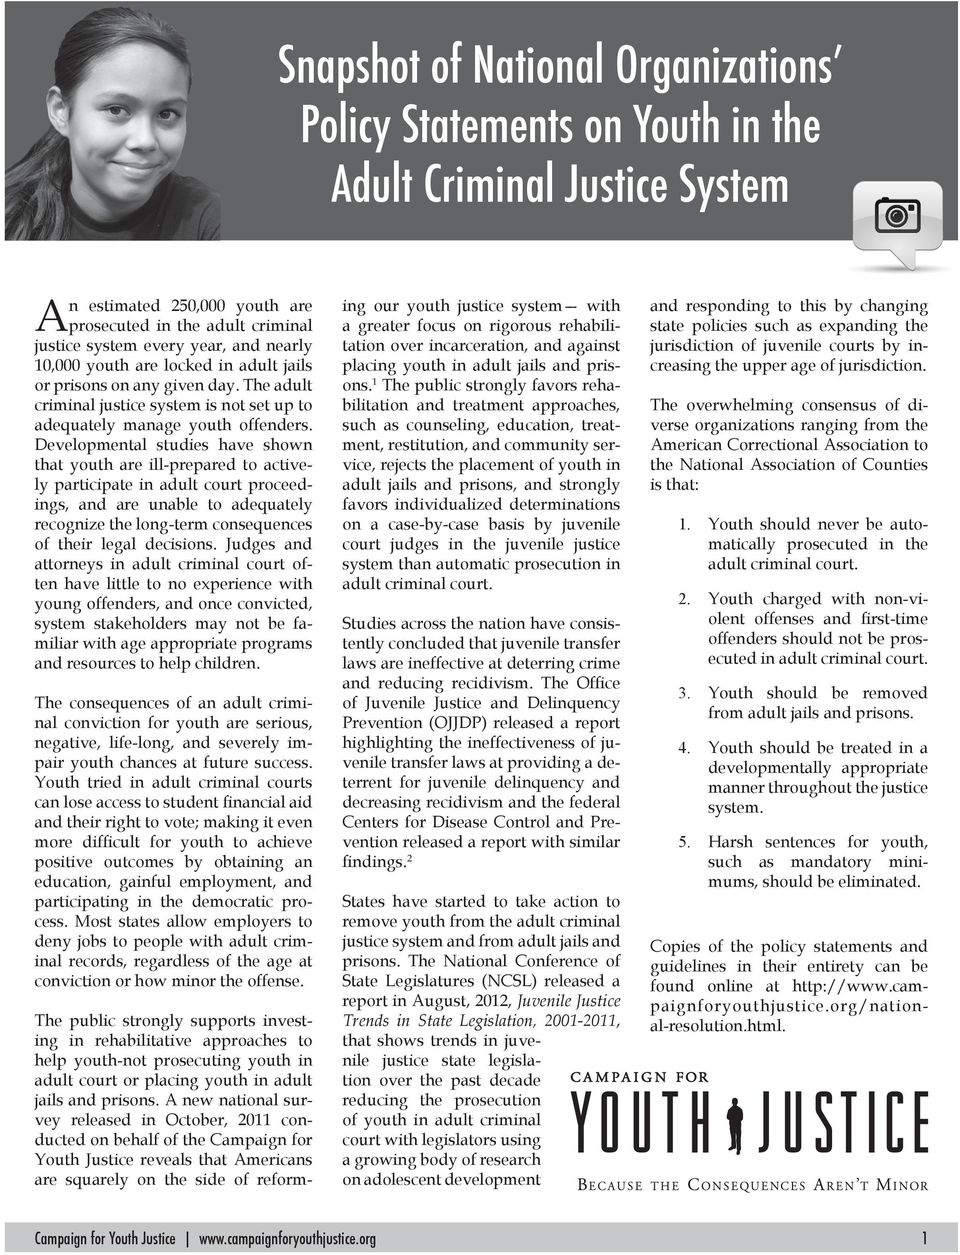 Developmental studies have shown that youth are ill-prepared to actively participate in adult court proceedings, and are unable to adequately recognize the long-term consequences of their legal